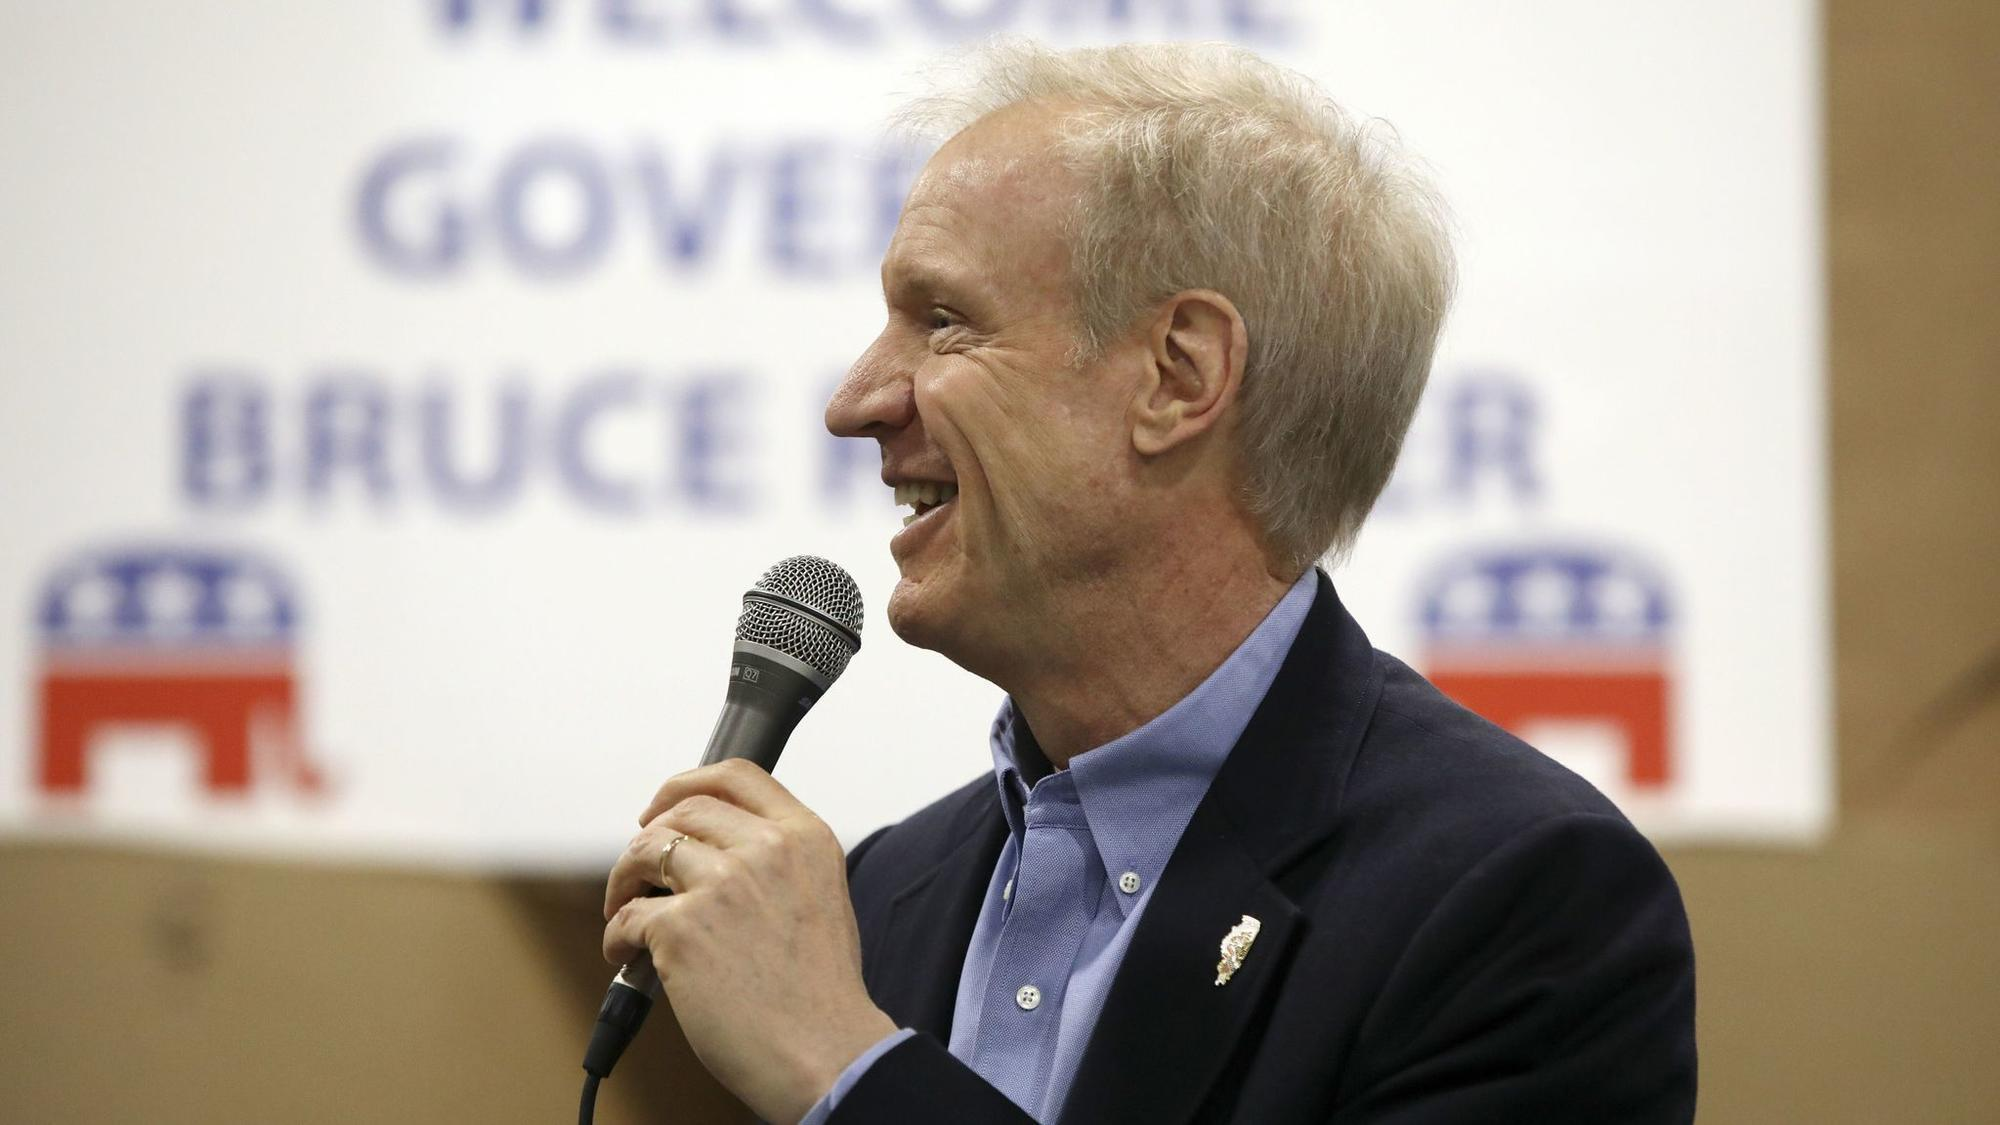 More than 600 bills will land on Rauner's desk as he seeks re-election